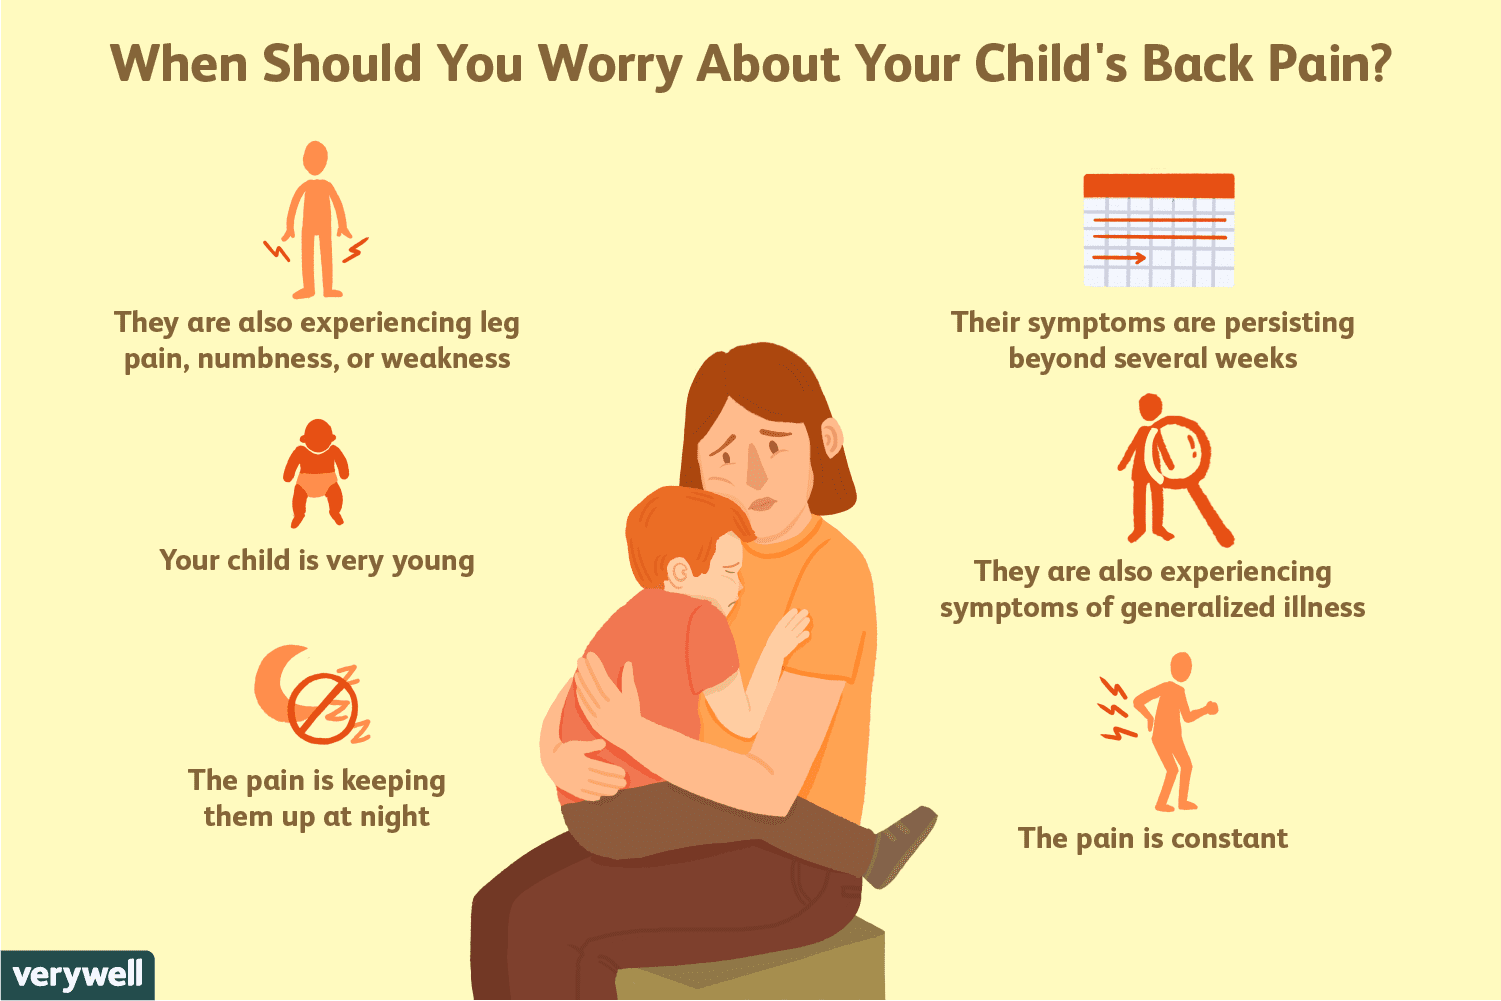 6 causes of back pain in kids, and when to worry